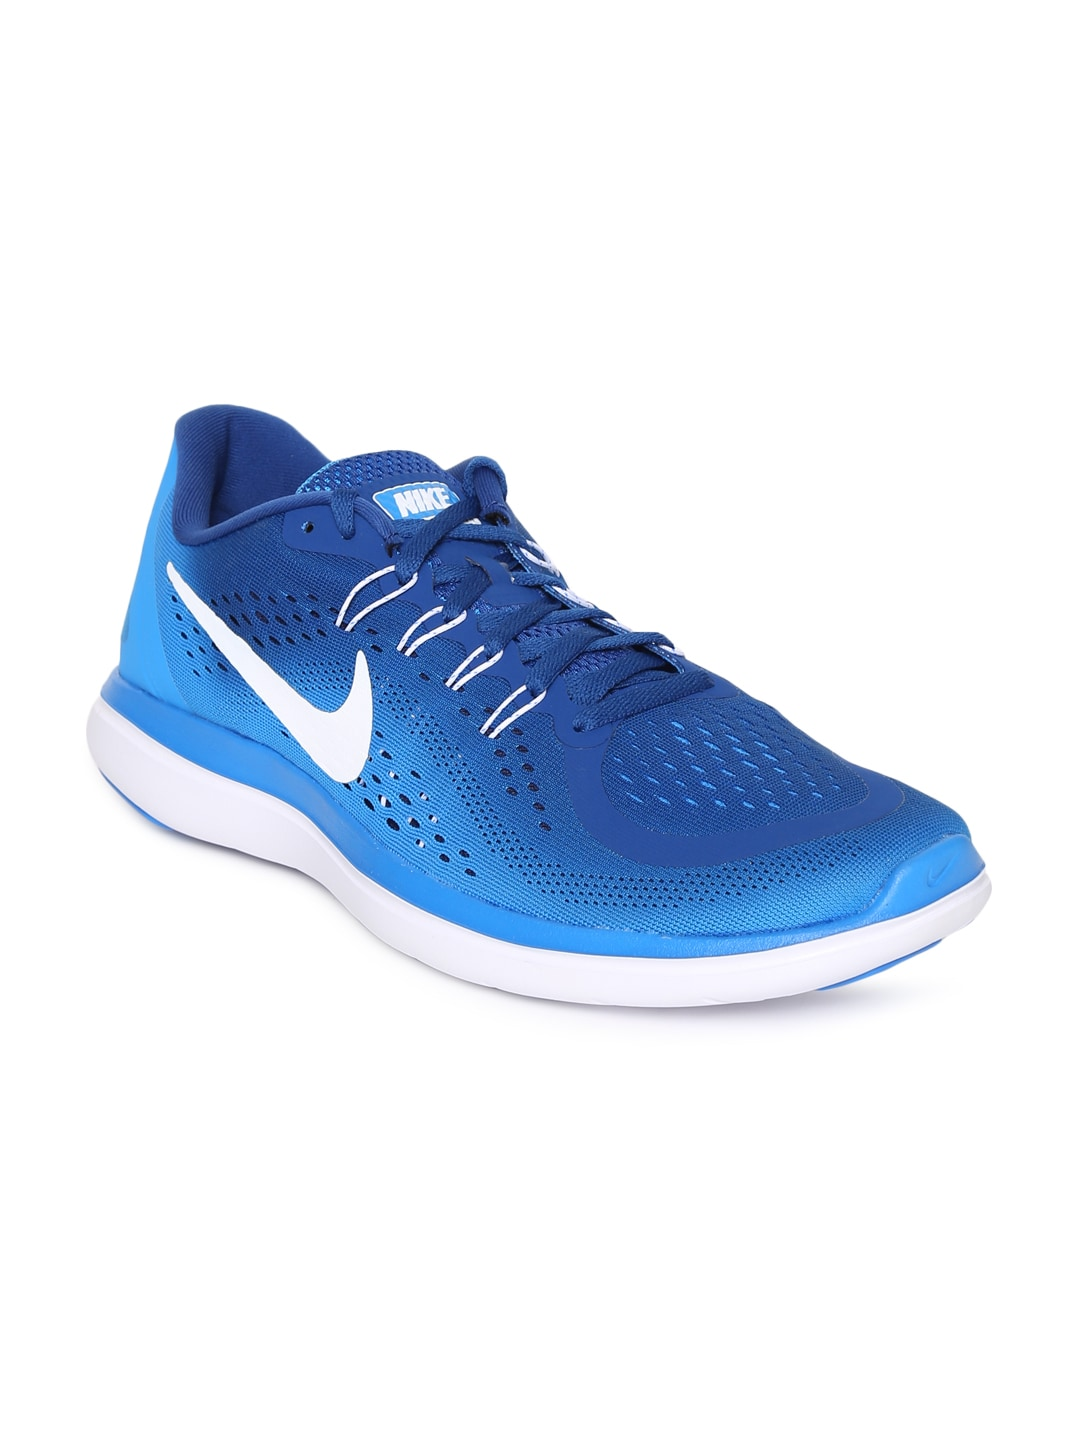 986e00fbf89e Nike Flex 2017 - Buy Nike Flex 2017 online in India